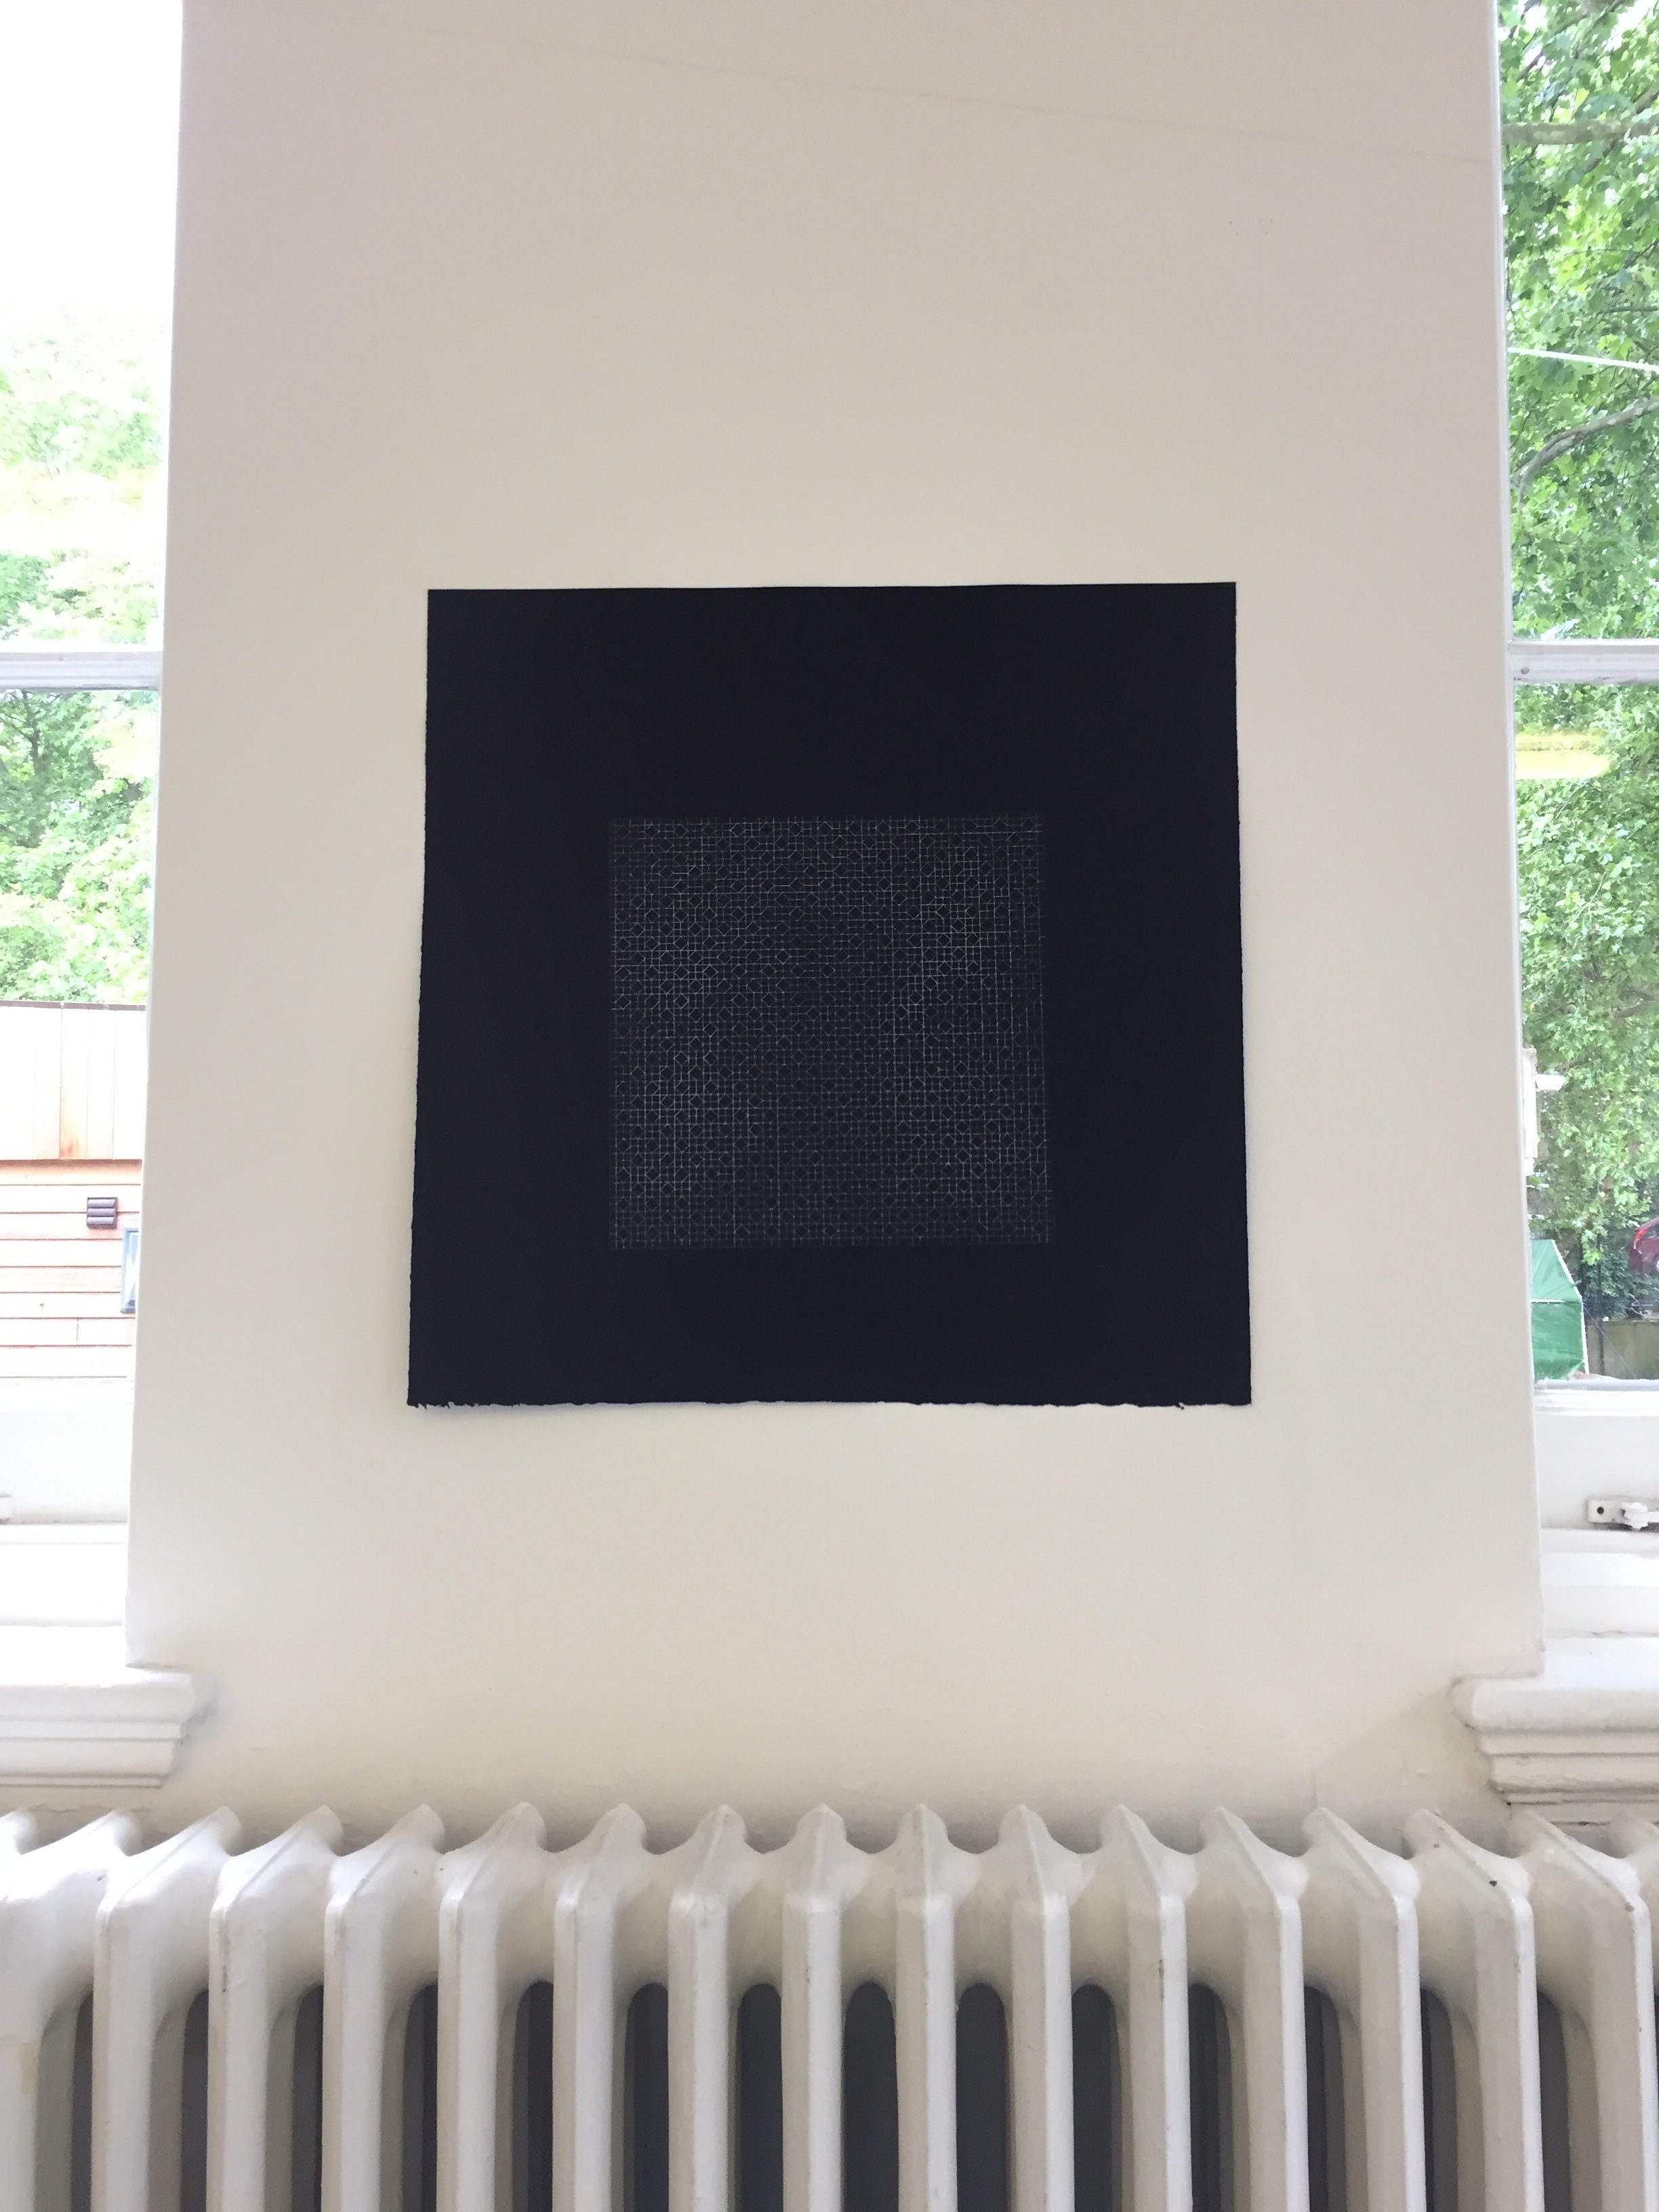 'a=b(black)' by Fei In Leong